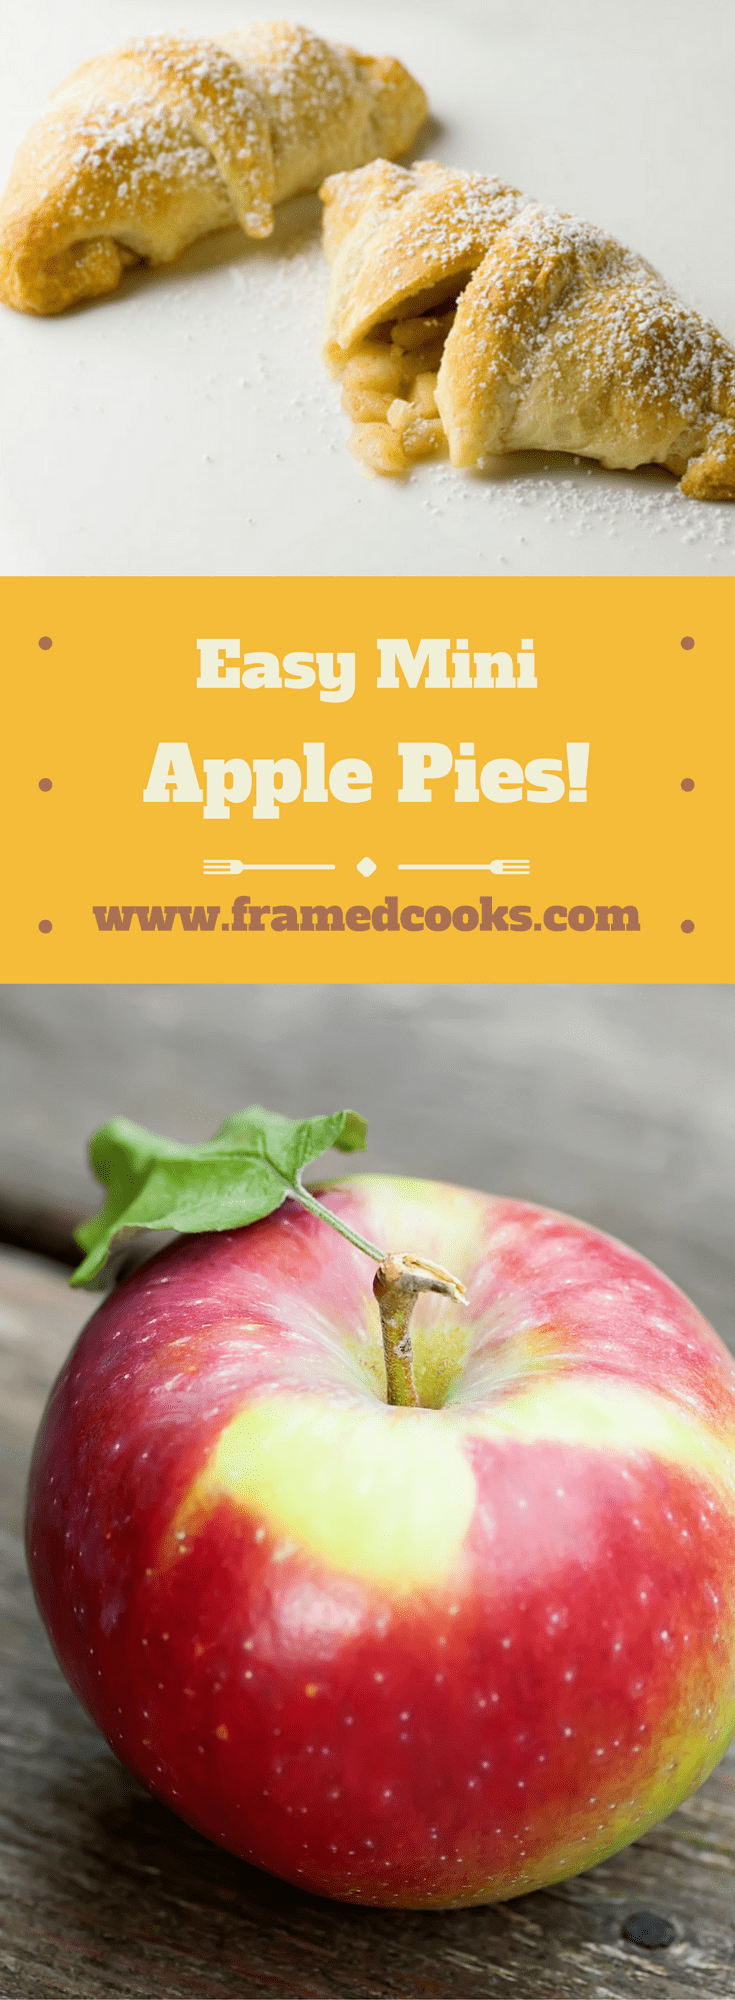 These easy mini apple pies are full of sweet and spicy apples. It's like having a little apple pie right there in your hand!